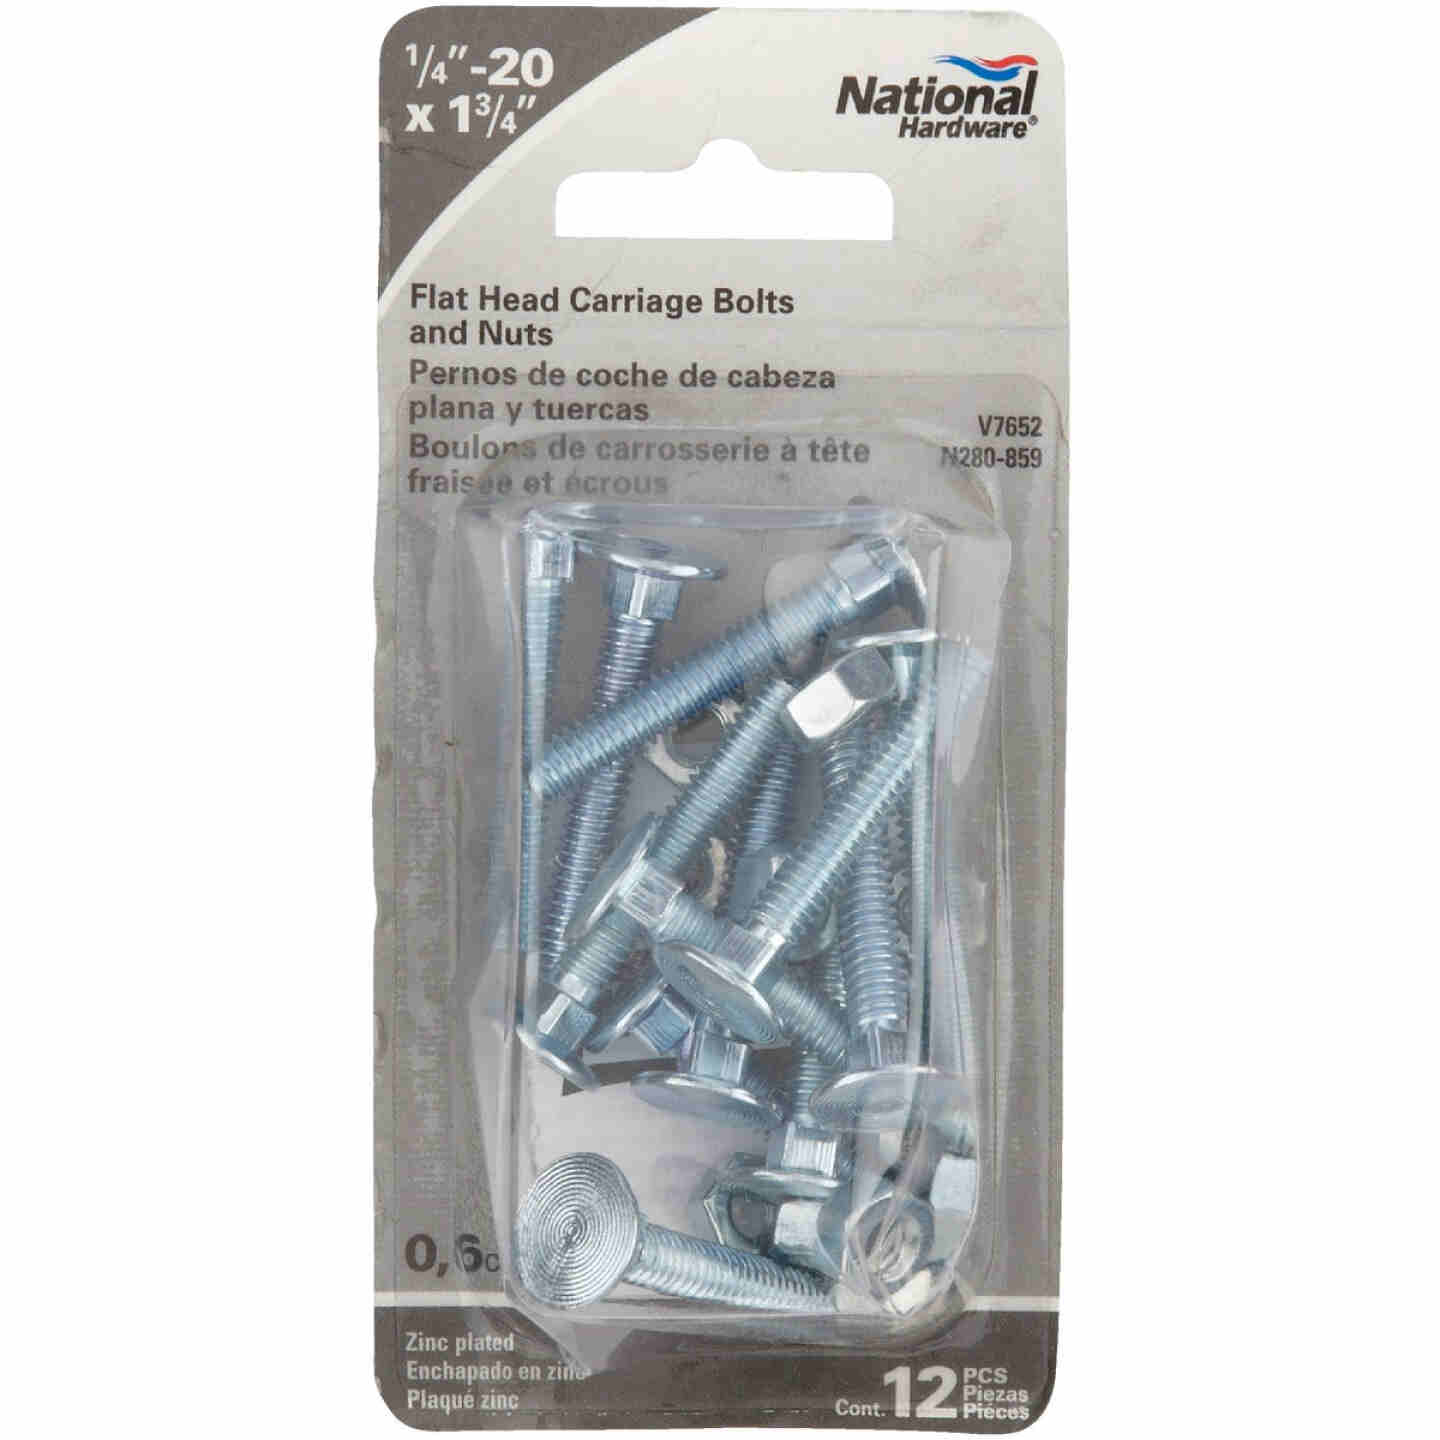 Prime-Line 1/4 In.-20 x 1-7/8 In. Zinc Plated Carriage Bolts With Nuts Image 2